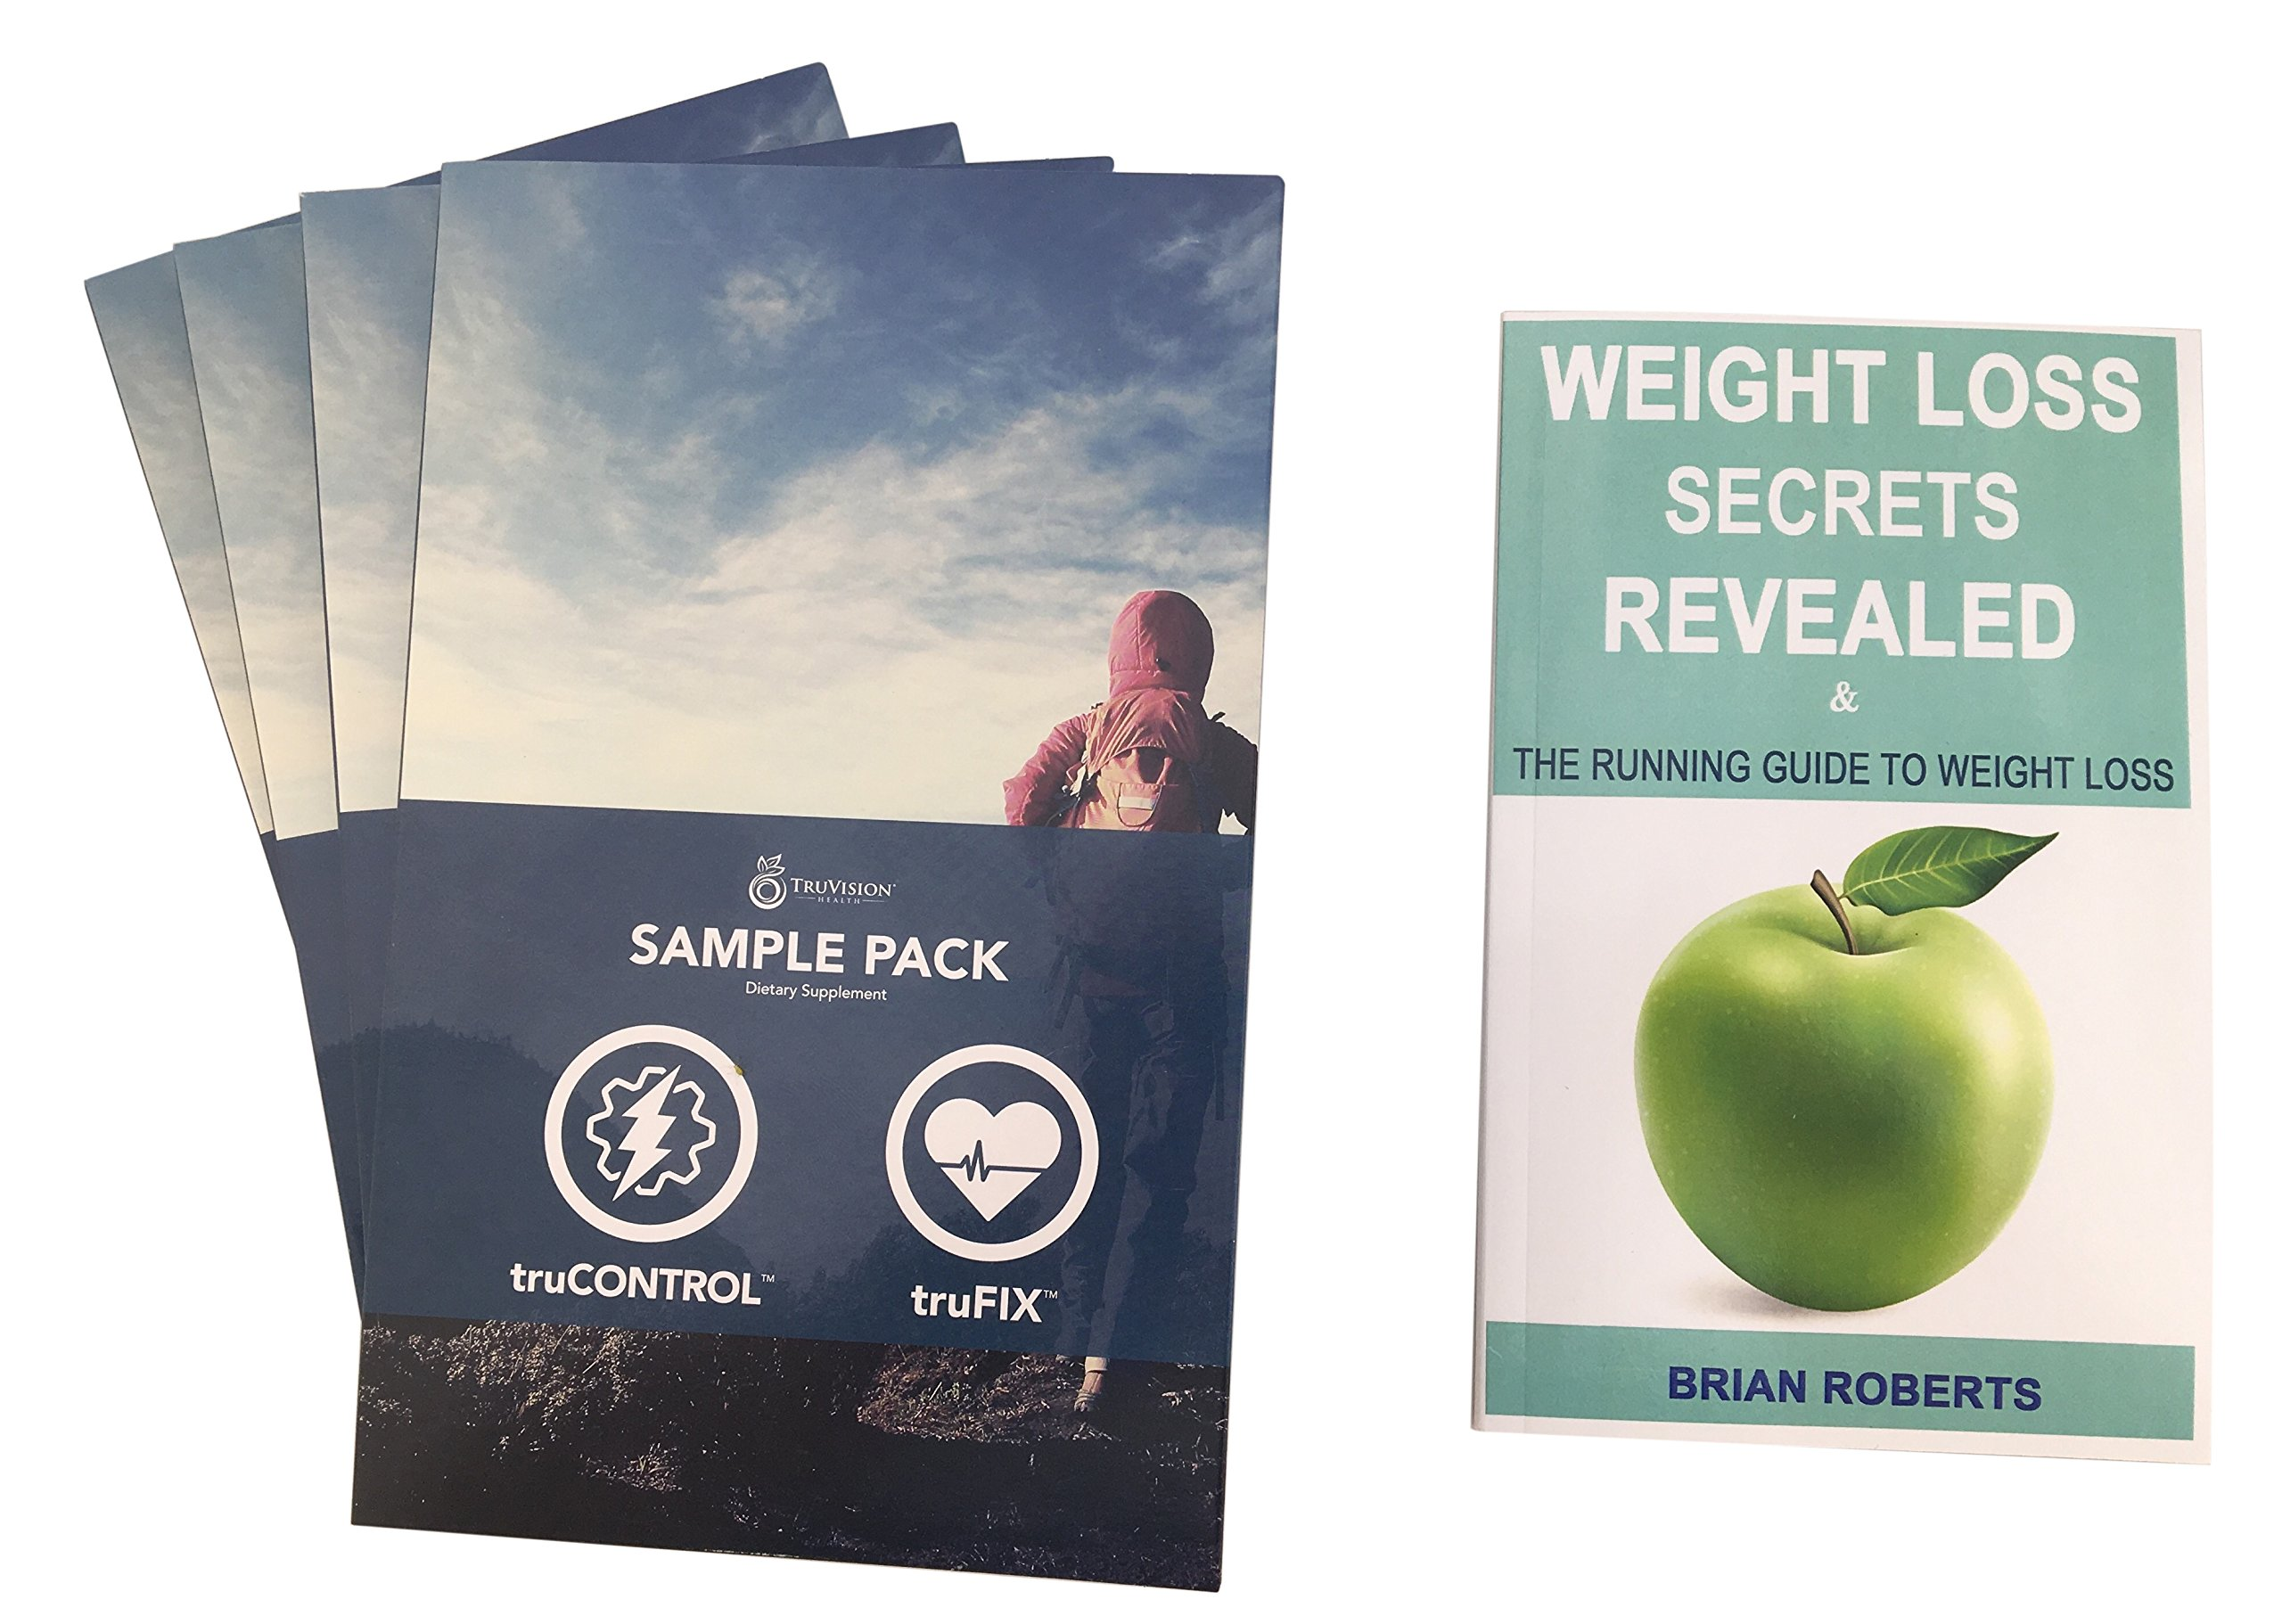 Truvision Health - TruFix and TruCONTROL 30 Day Supply (1 month, 120 capsules) with Companion Book: Weight Loss Secrets Revealed Bundle